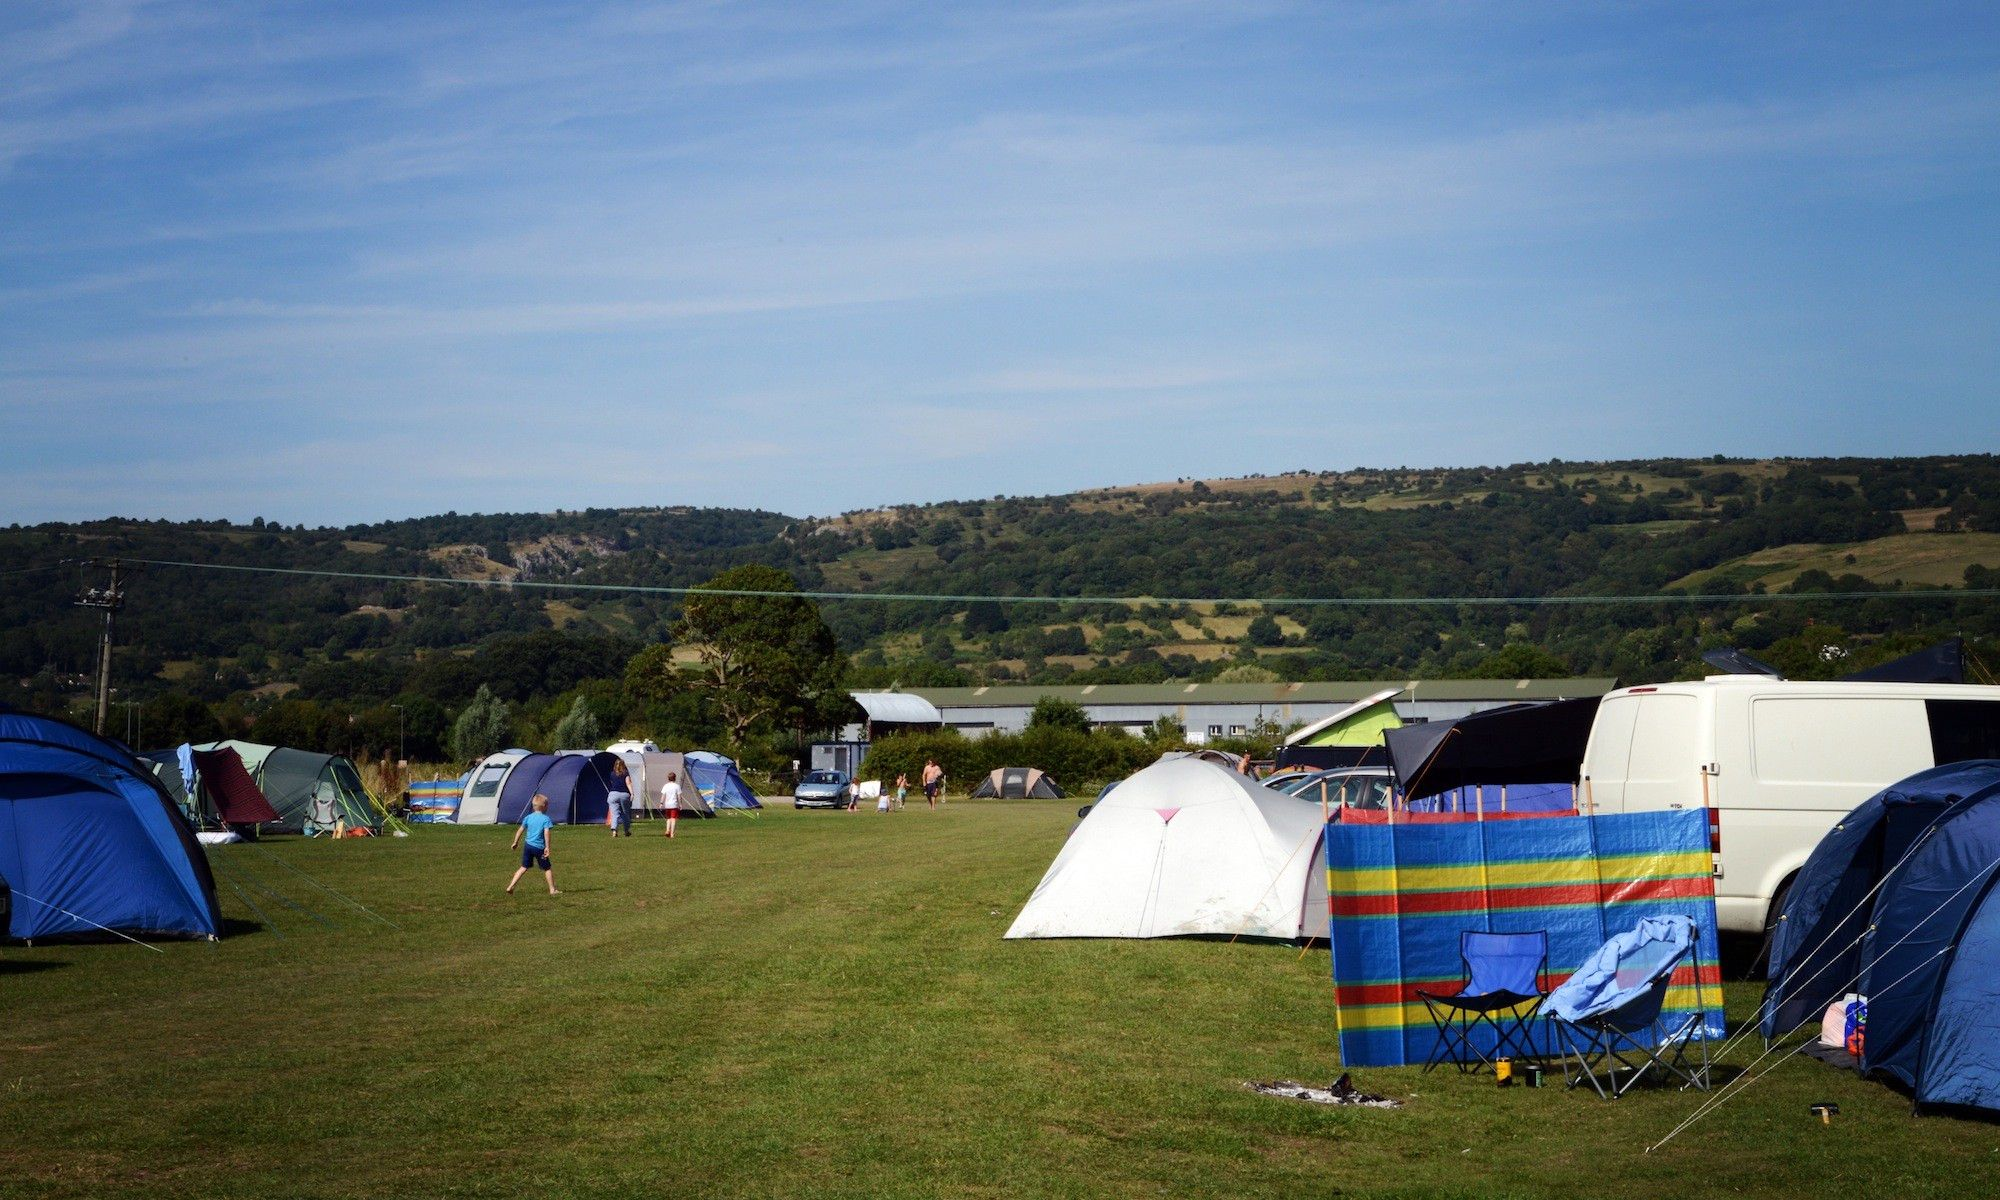 A live-and-let-live place where all are welcome. Kids can be kids, campfires are encouraged, music is not a problem and people feel free to wander round making new friends.